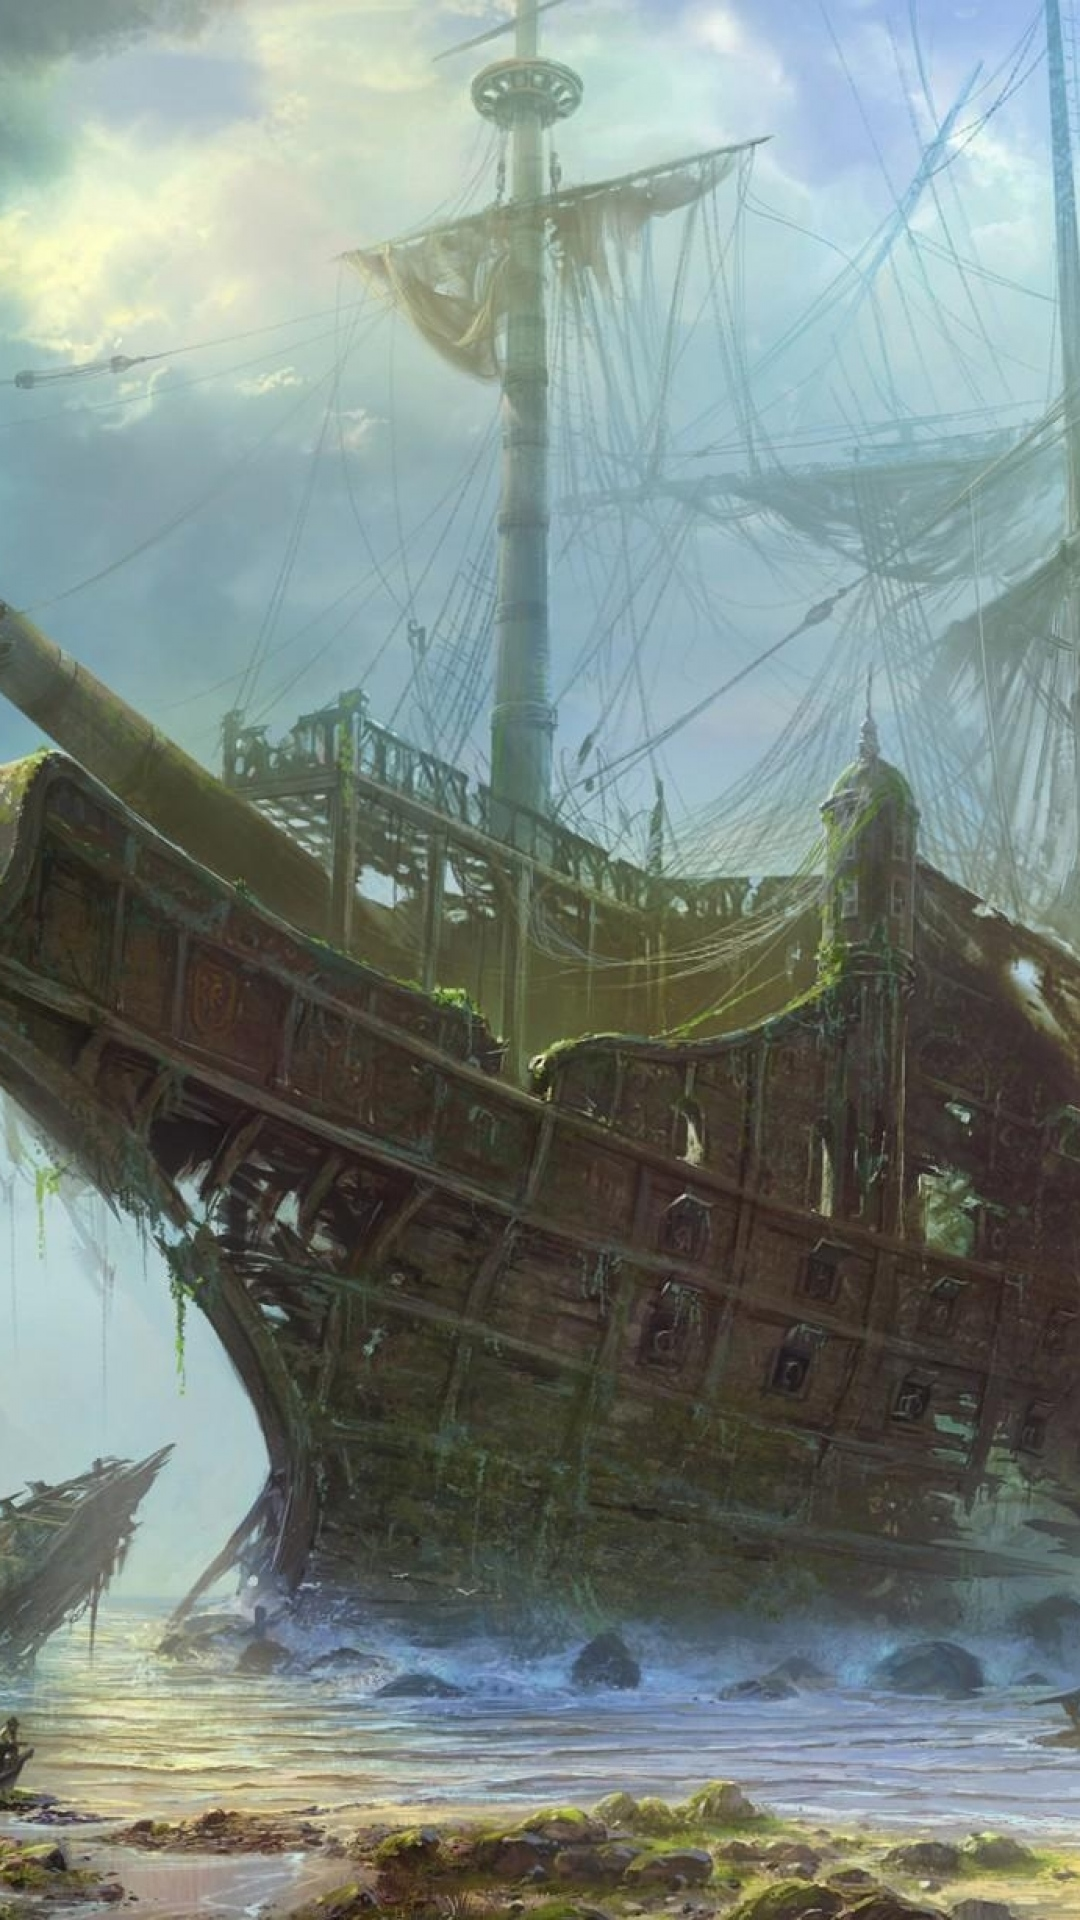 iphone wallpaper ships old wreckage Ship